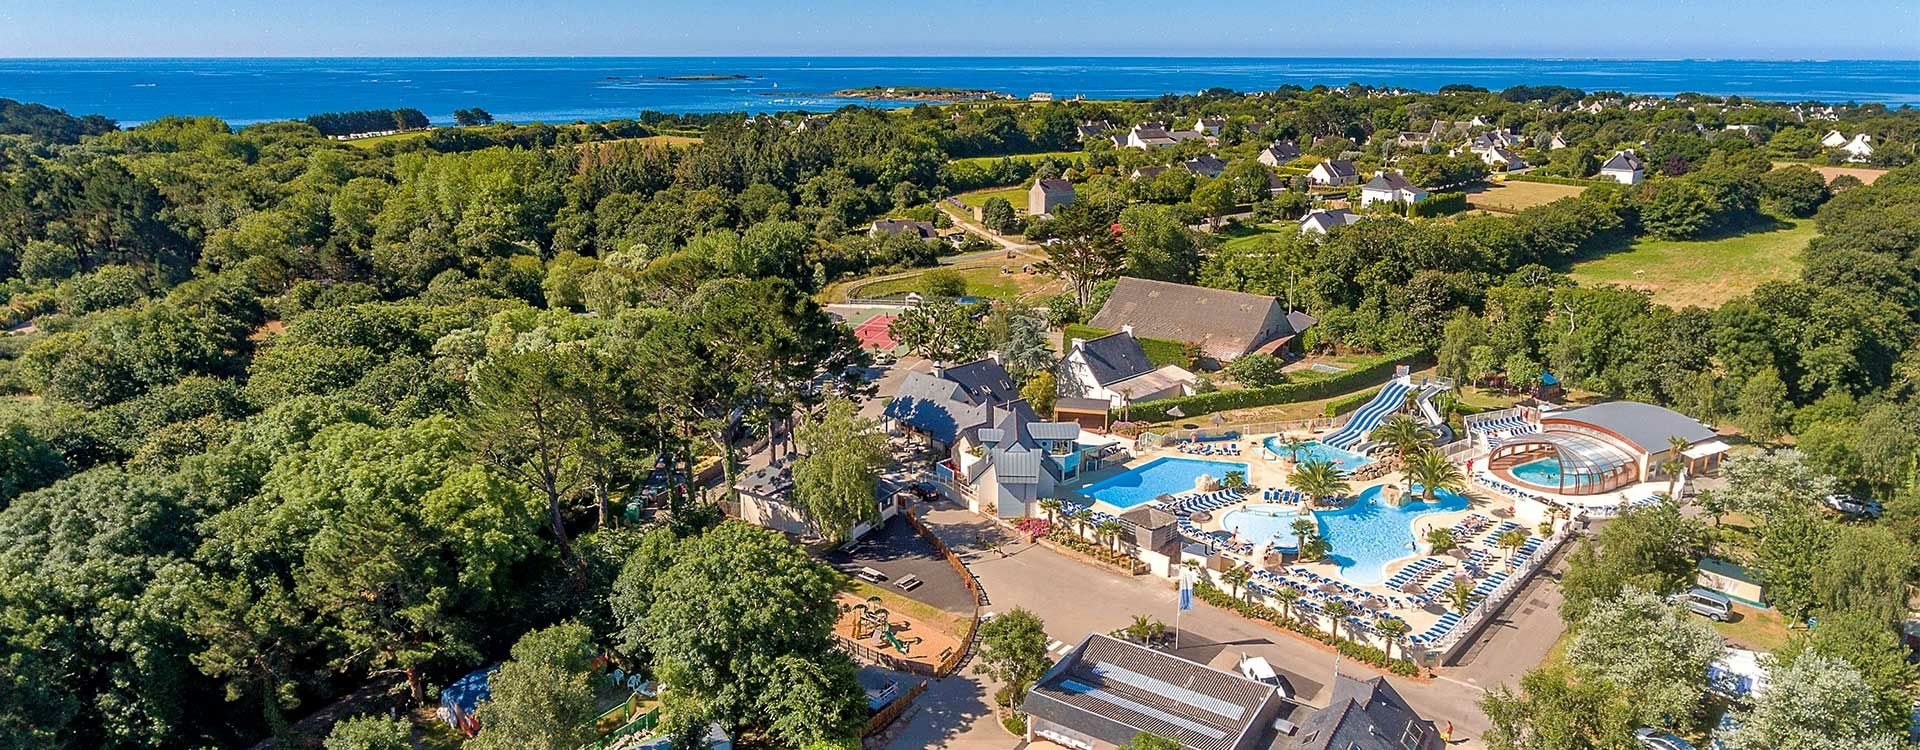 Camping Deux Fontaines